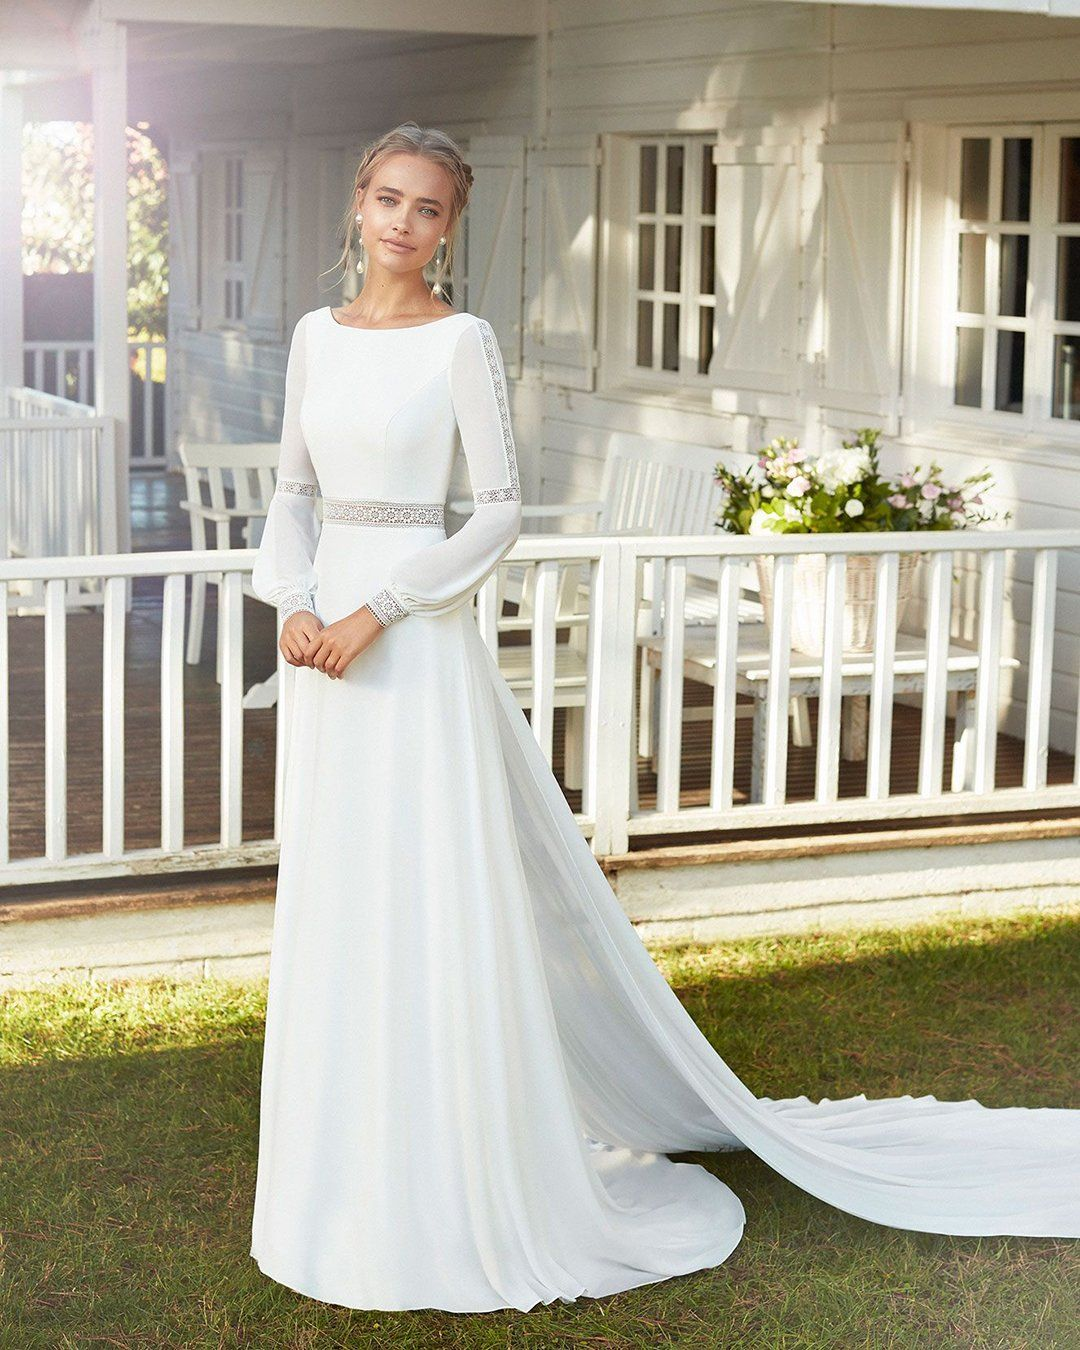 18 CUTE MODEST WEDDING DRESSES TO INSPIRE in 18   Wedding ...